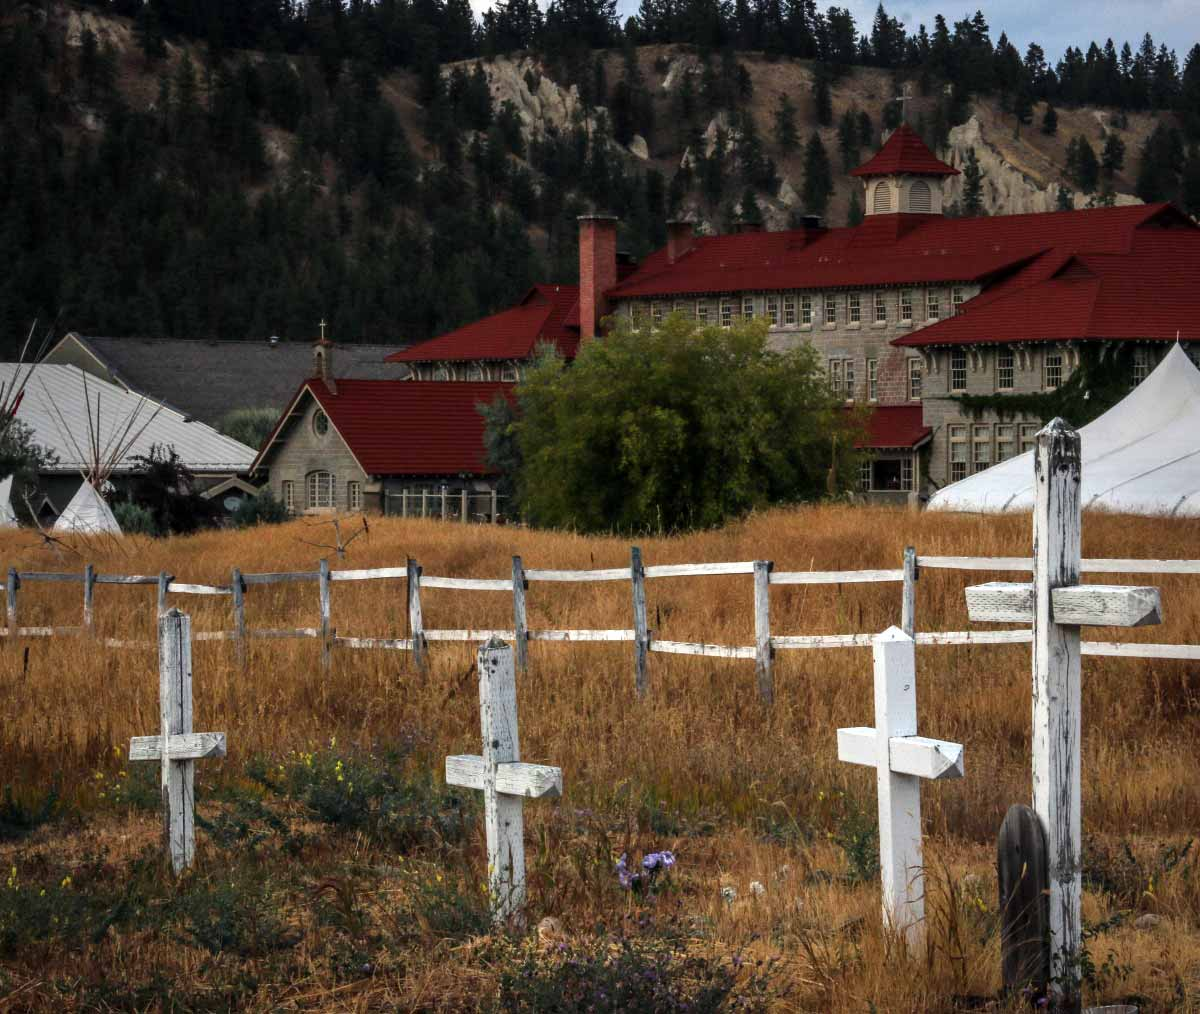 crosses in front of the St. Eugene Mission Red Brick Schoolhouse